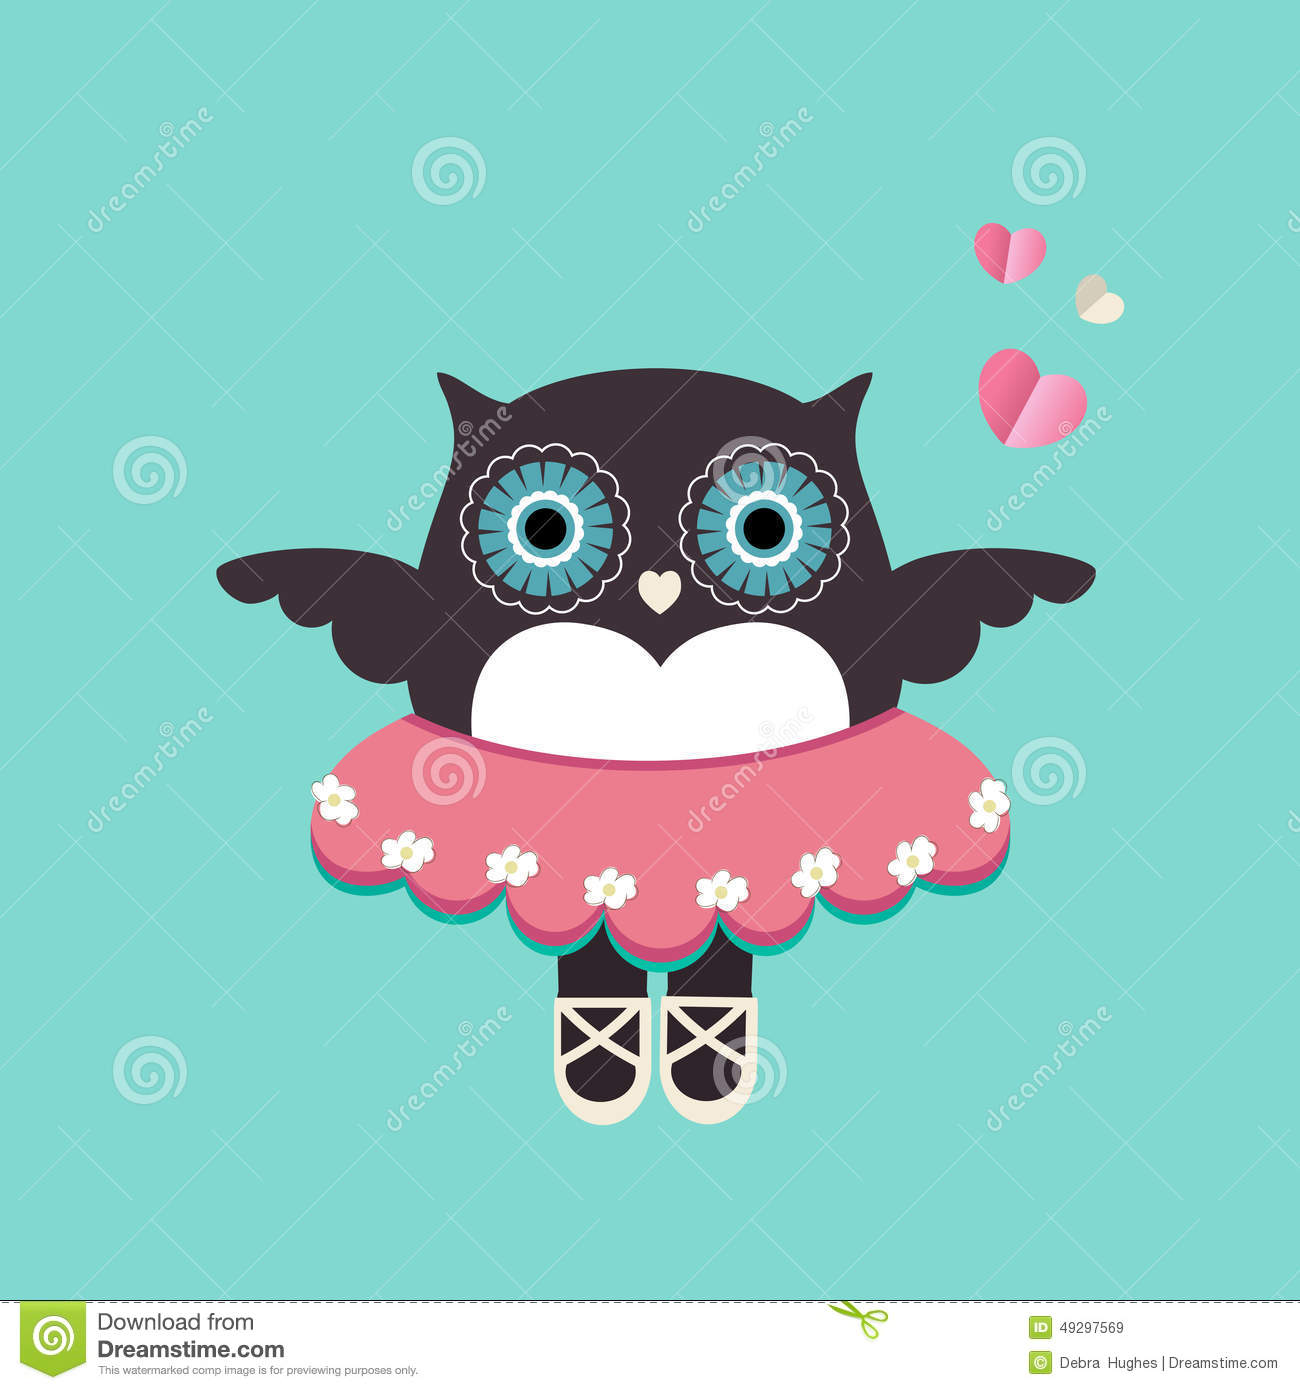 Cute Owl Ballerina With Tutu Slippers And Winds Flowers For Eyes